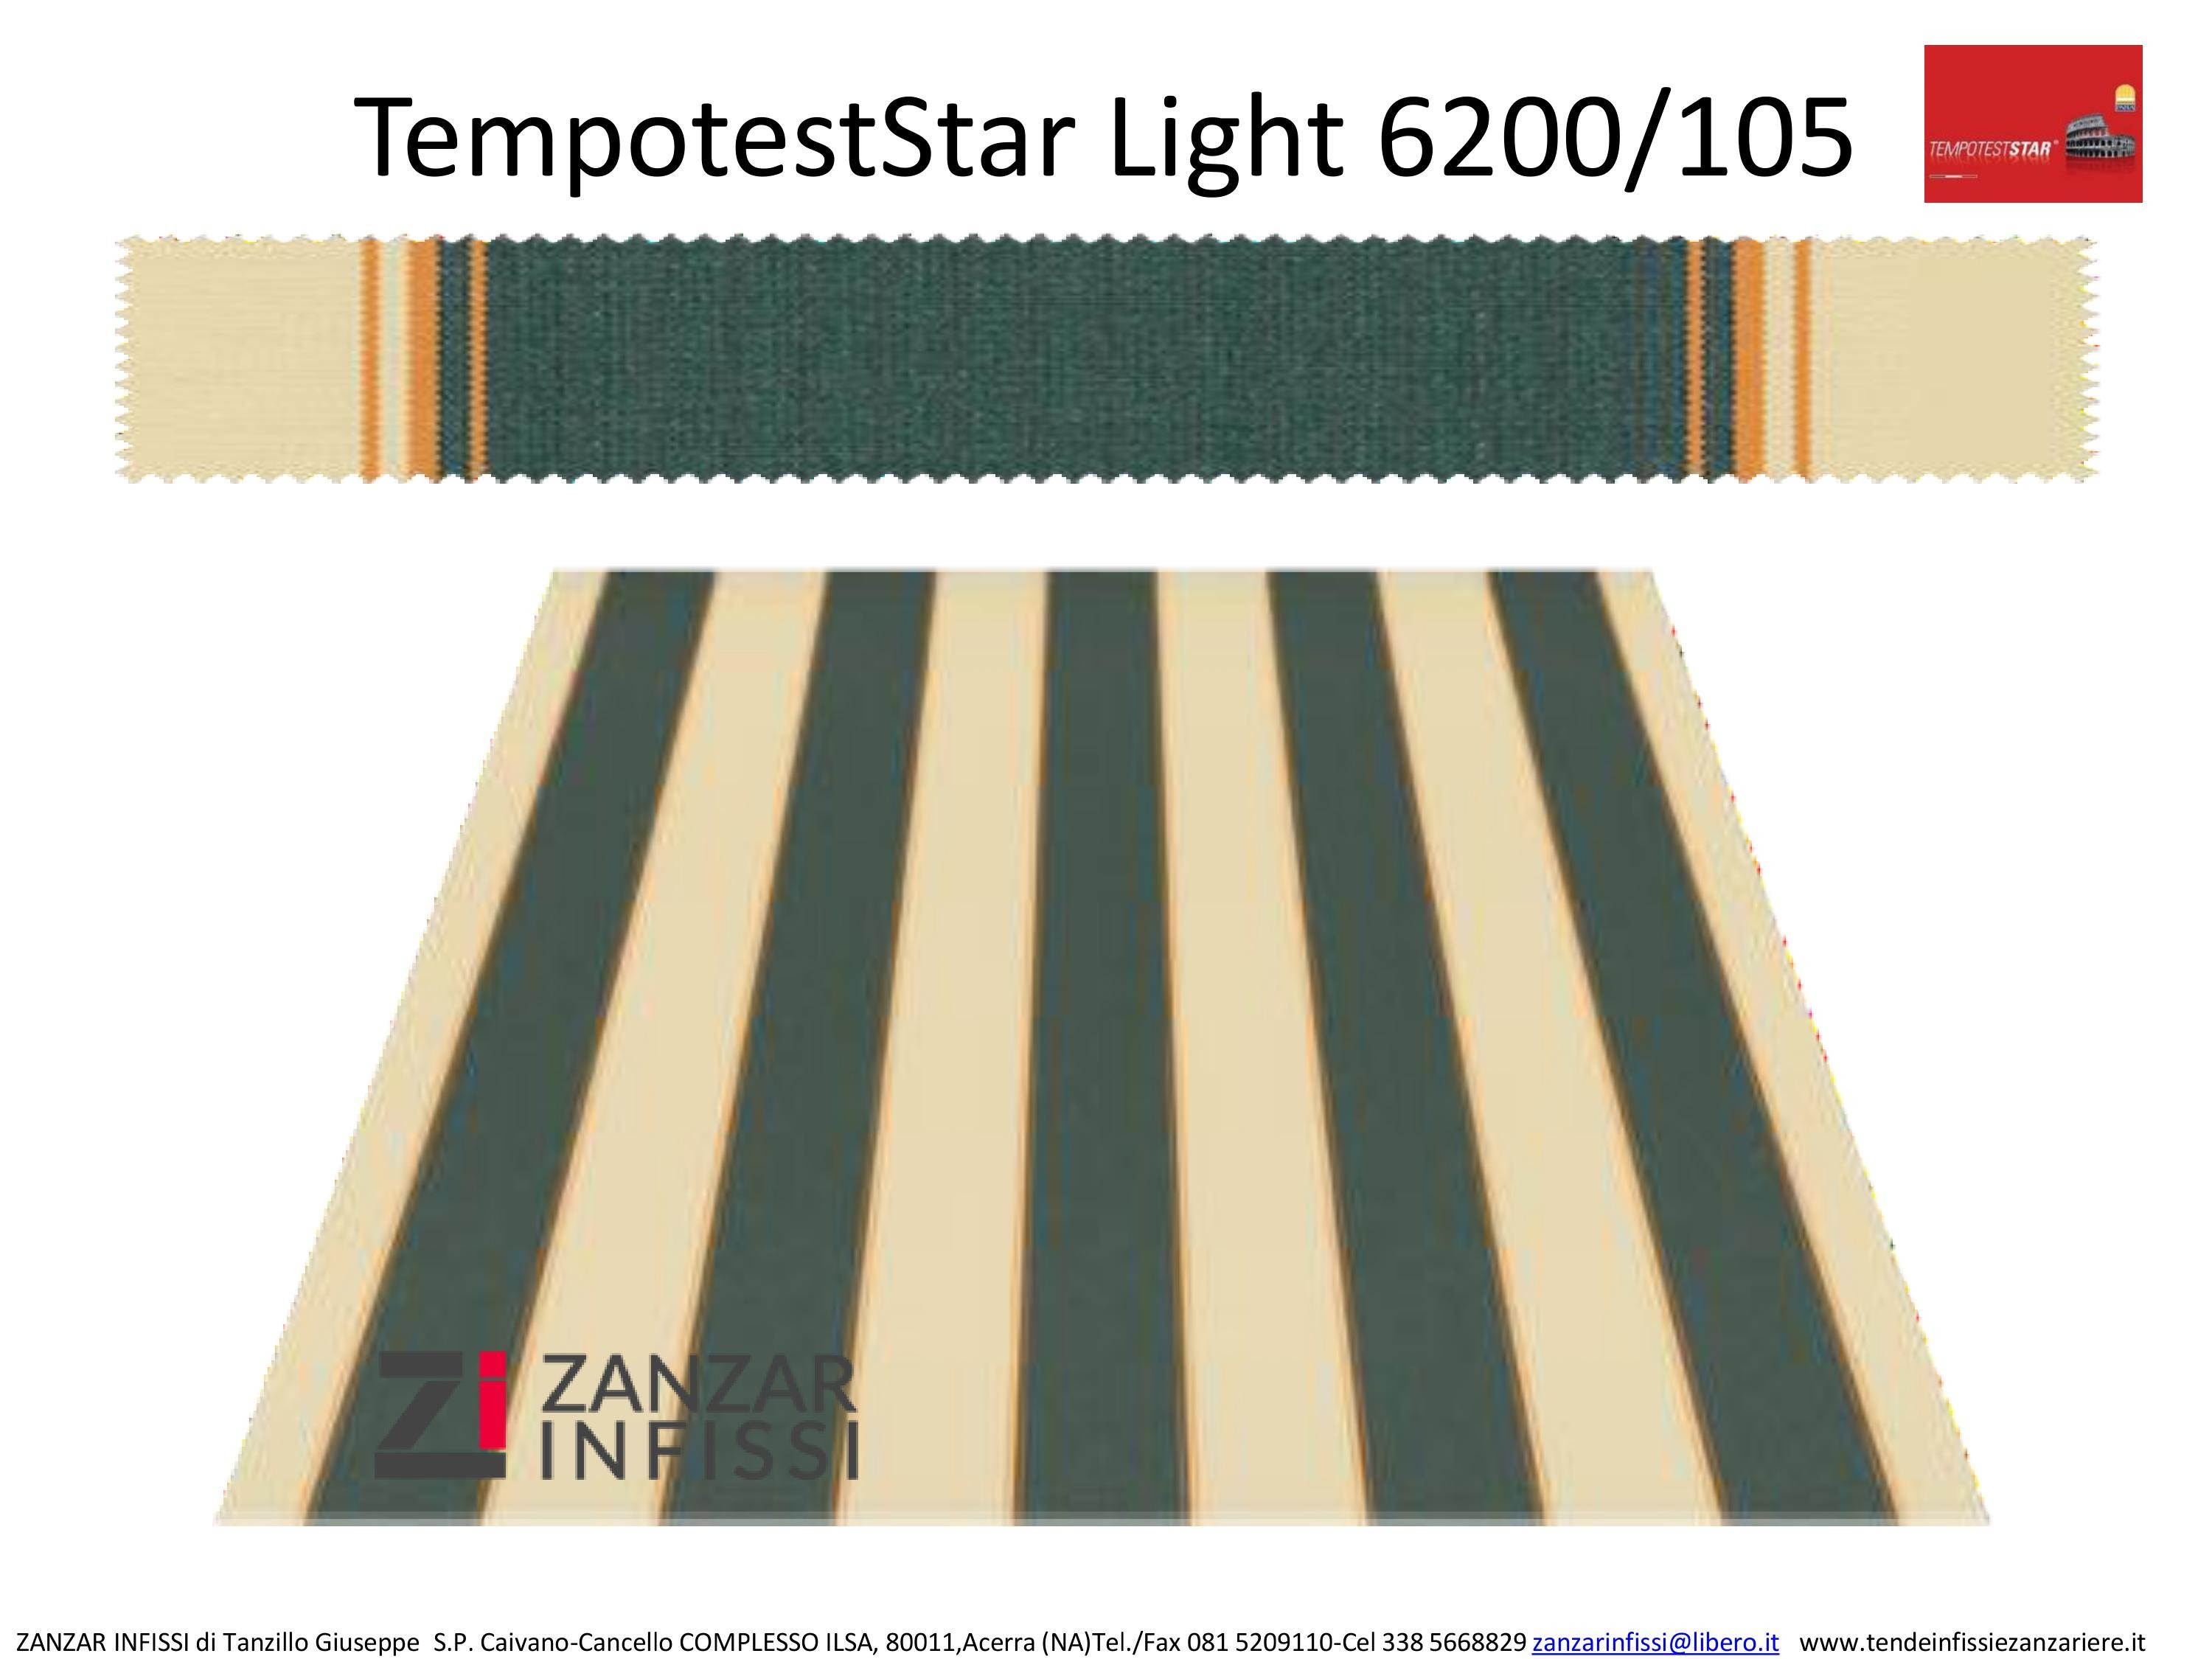 Tempotest star light 6200/105